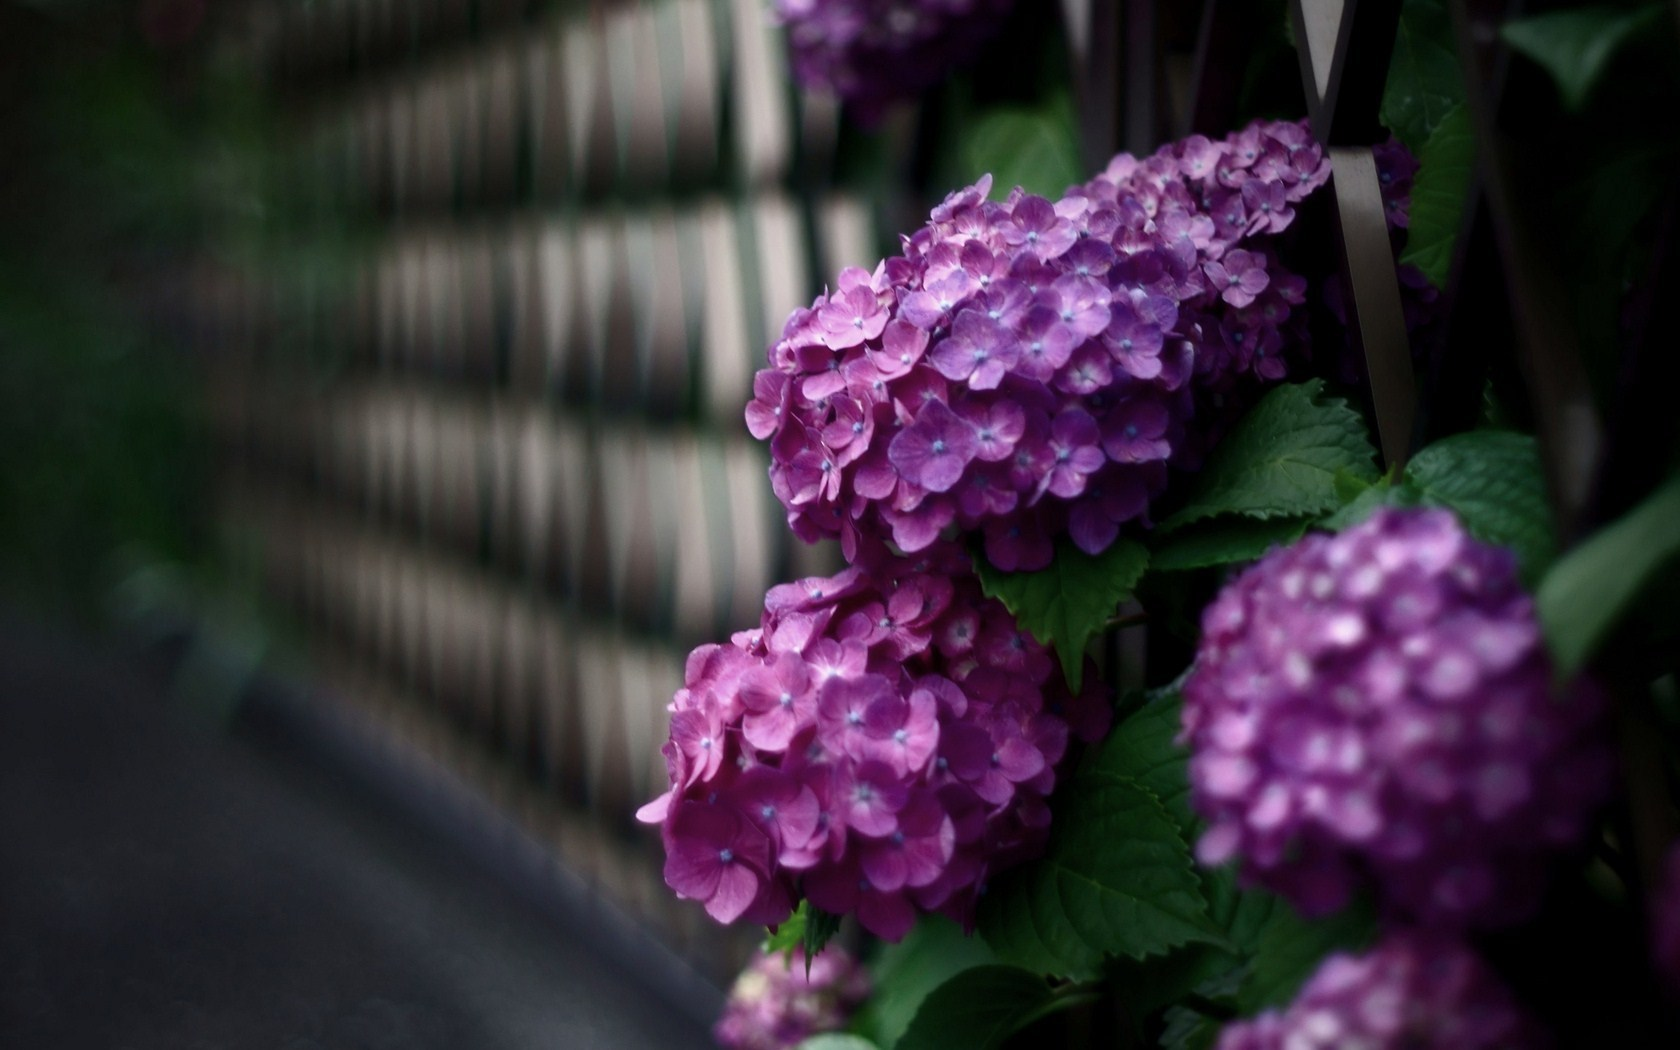 hydrangea flowers wallpaper pictures 49014 1680x1050 px